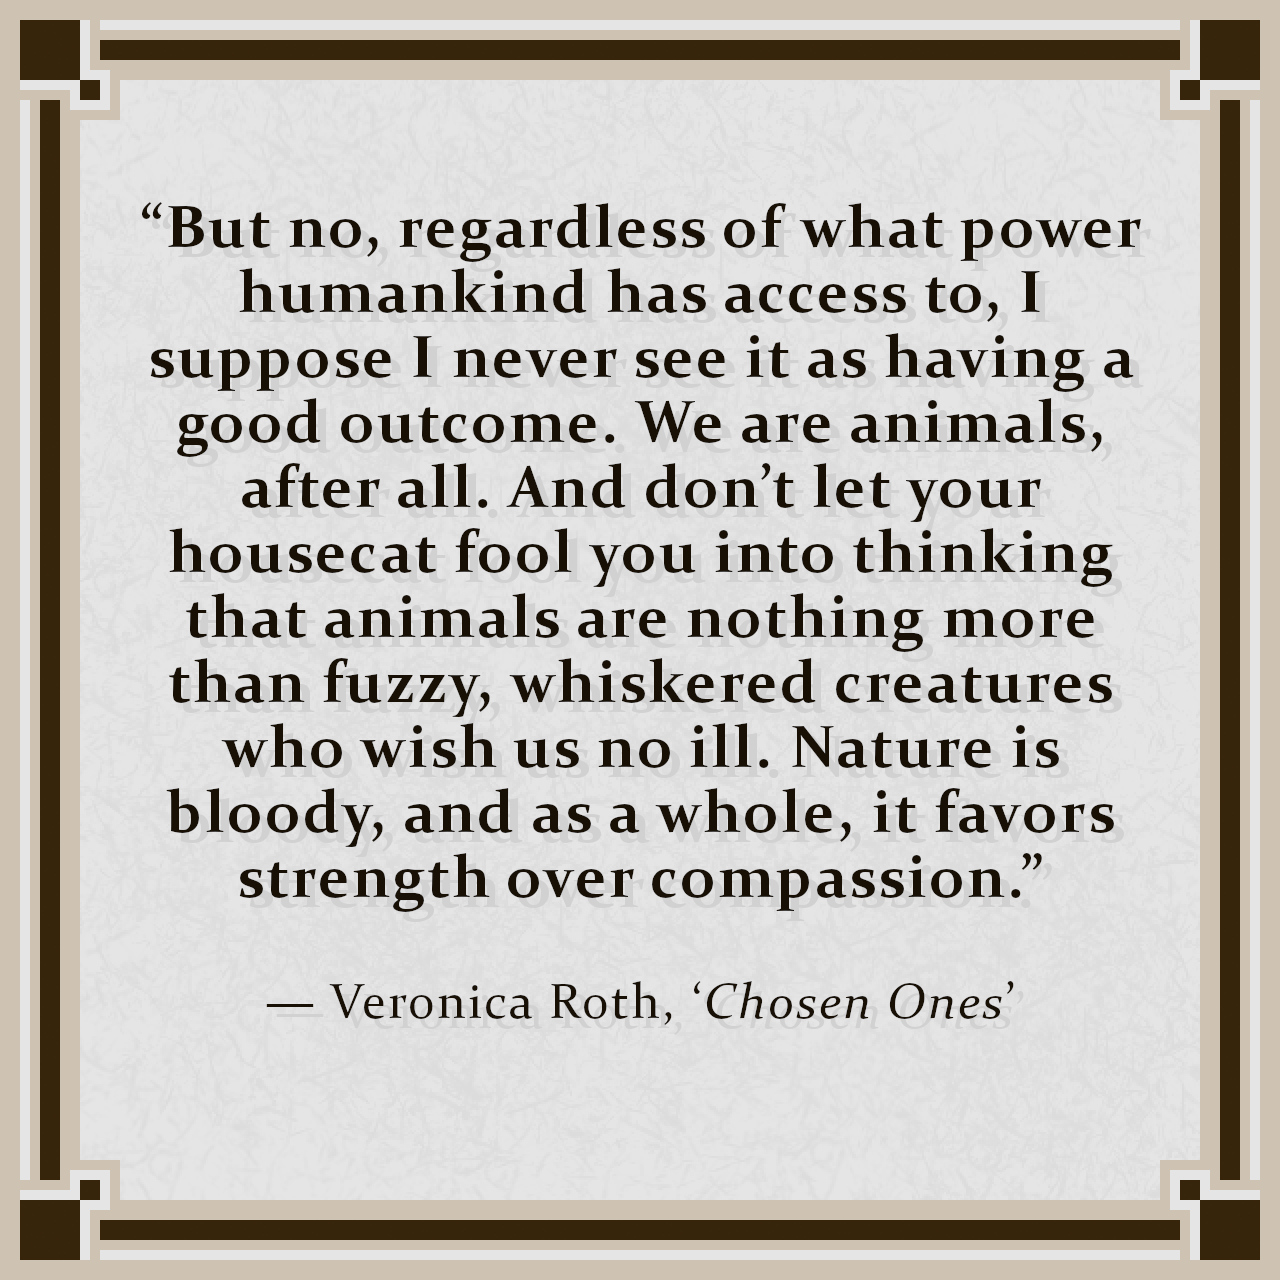 """""""But no, regardless of what power humankind has access to, I suppose I never see it as having a good outcome. We are animals, after all. And don't let your housecat fool you into thinking that animals are nothing more than fuzzy, whiskered creatures who wish us no ill. Nature is bloody, and as a whole, it favors strength over compassion."""" — Veronica Roth, 'Chosen Ones'"""